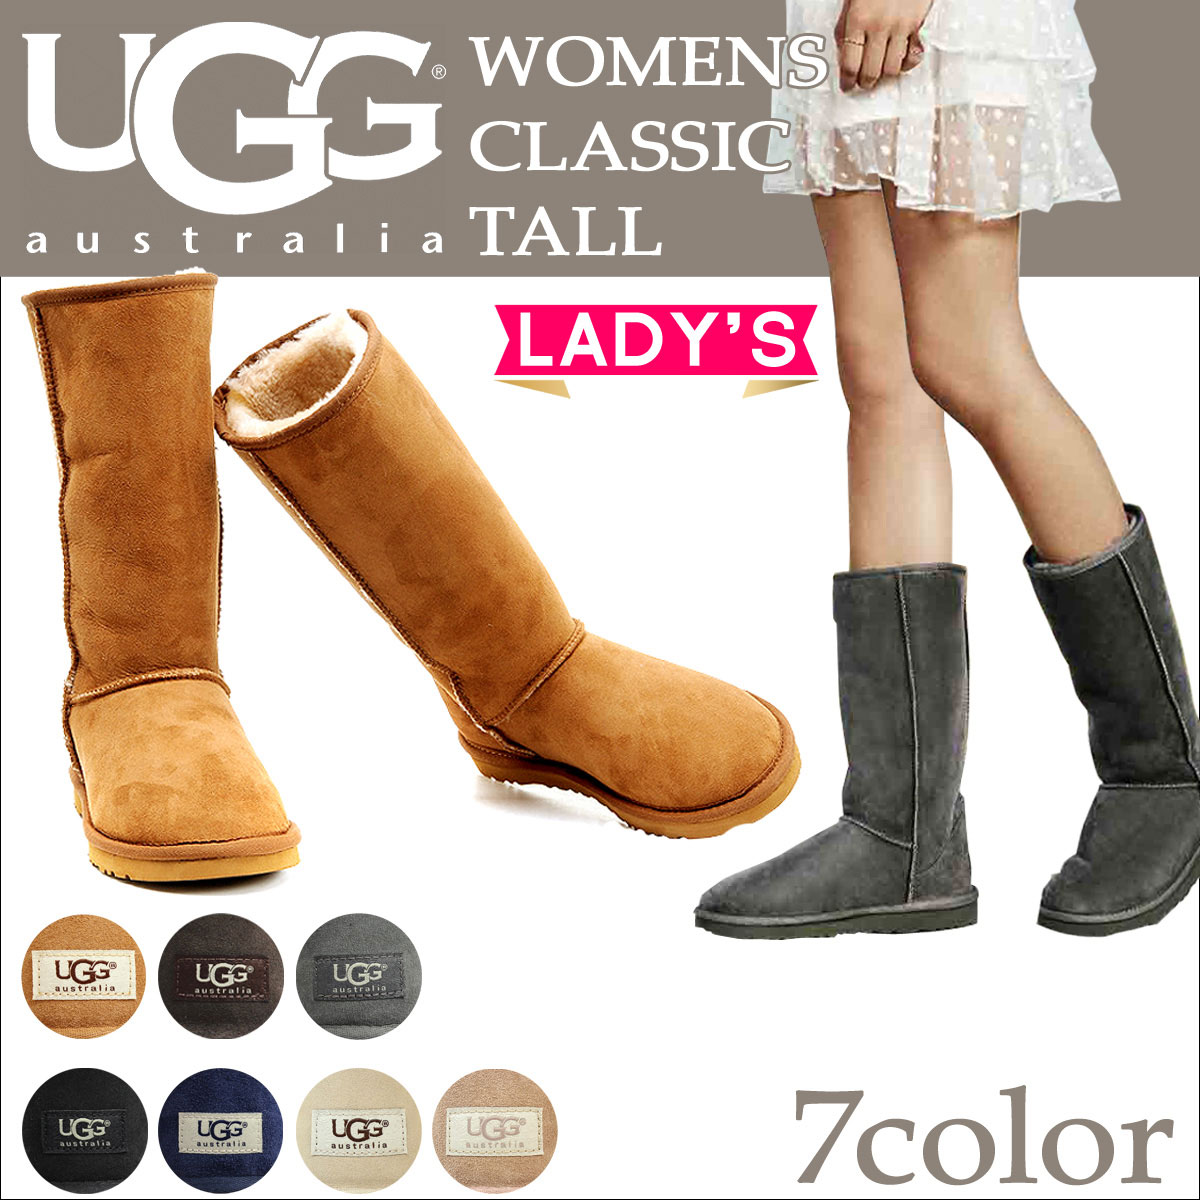 UGG Ugg Classic Tall Sheepskin boots WOMENS CLASSIC TALL 5815 Sheepskin women's